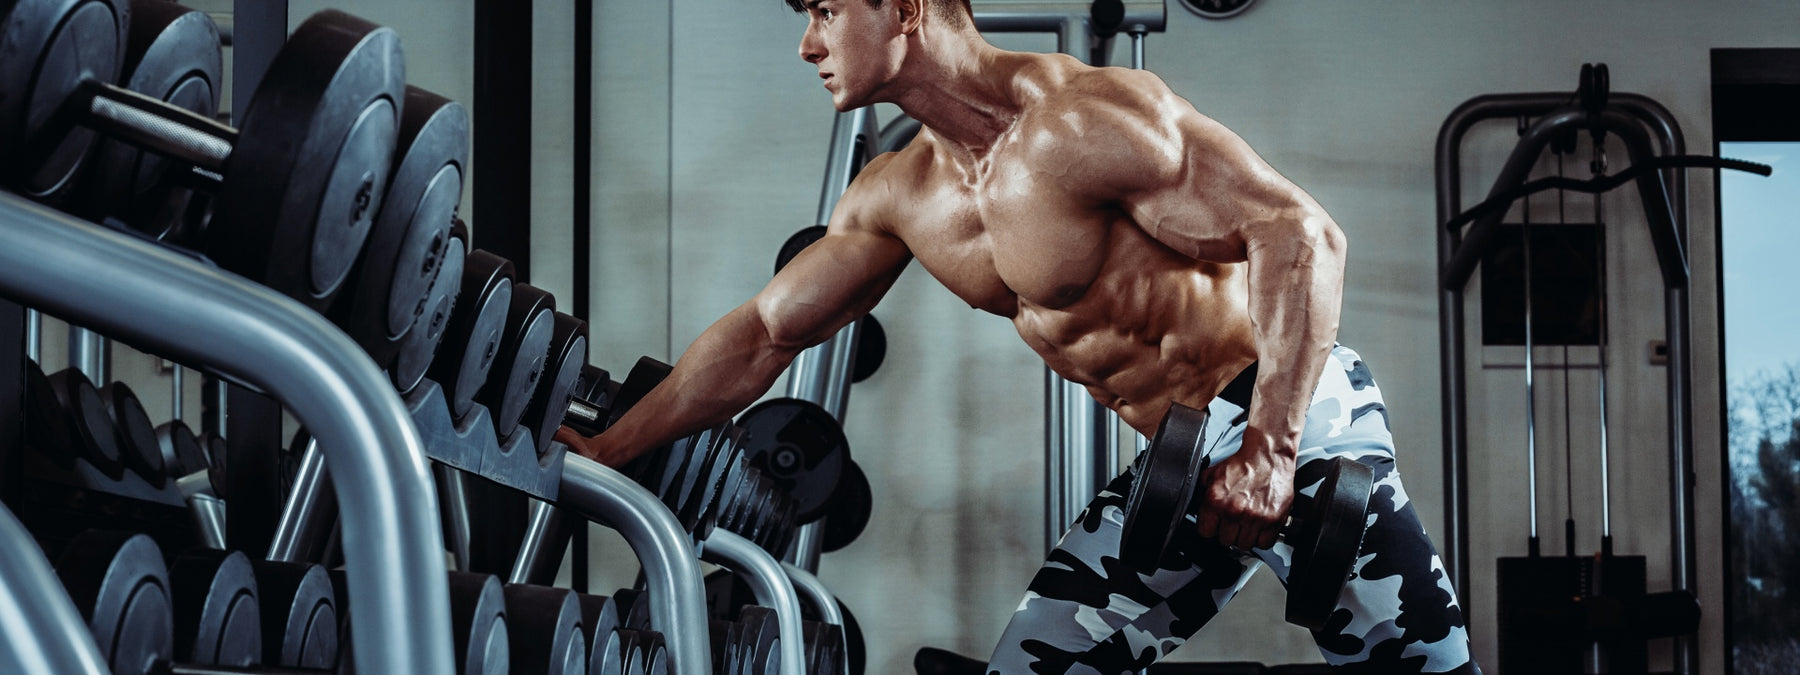 How to Build Muscle Mass Fast - Using High Intensity Workouts